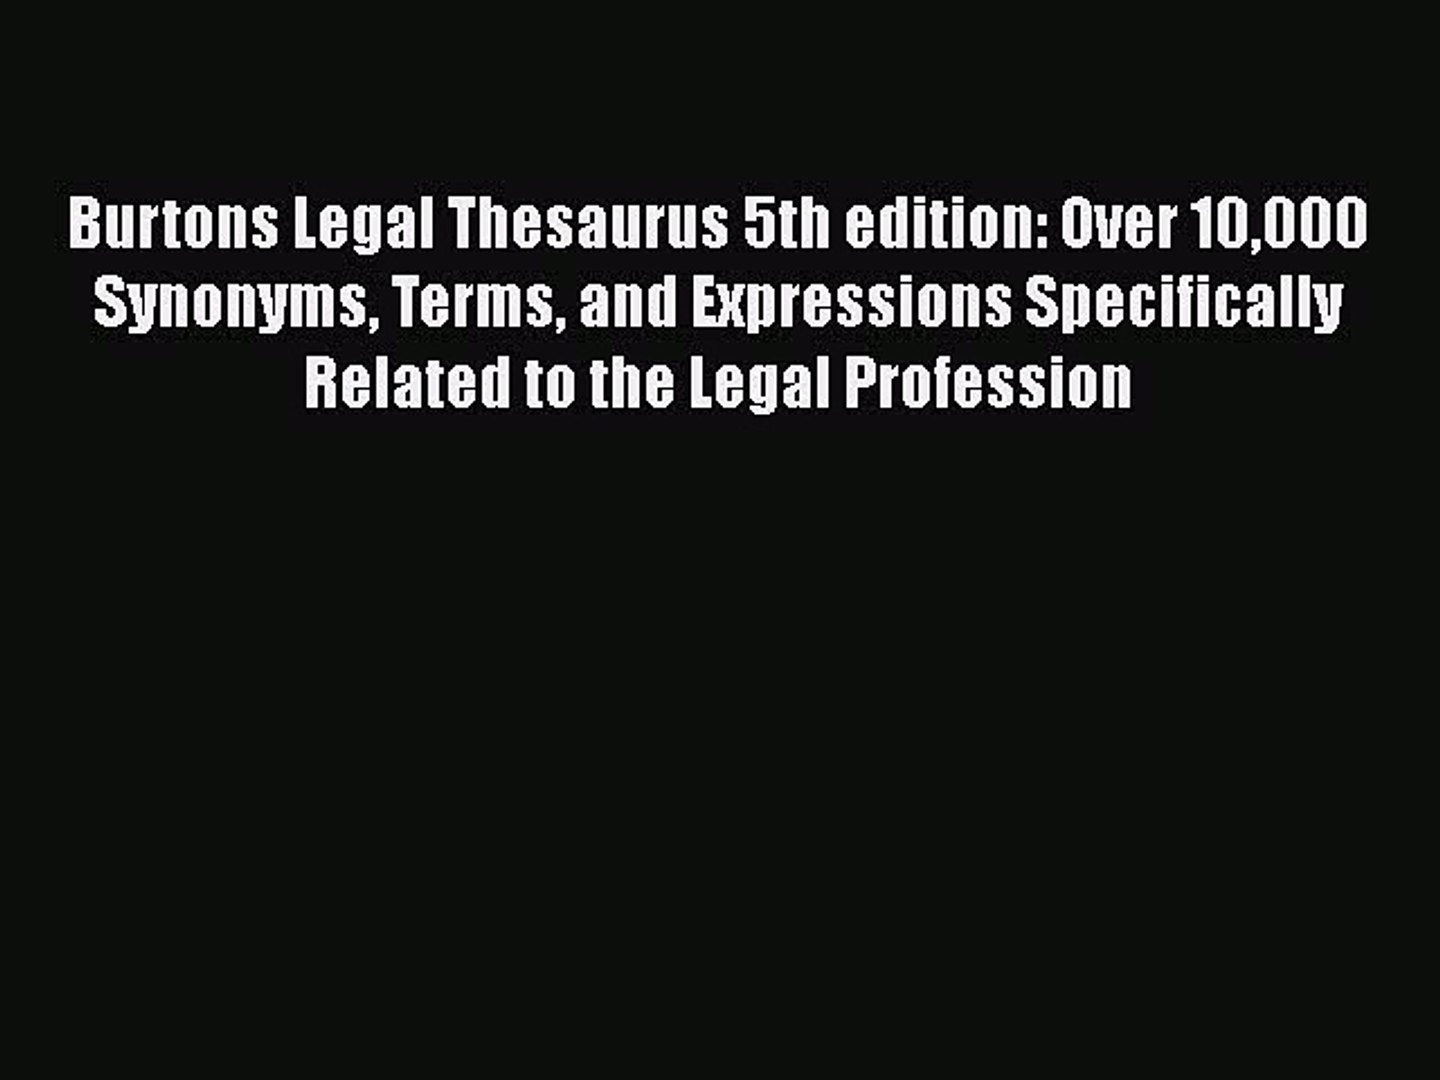 Read Burtons Legal Thesaurus 5th edition: Over 10000 Synonyms Terms and Expressions Specifically